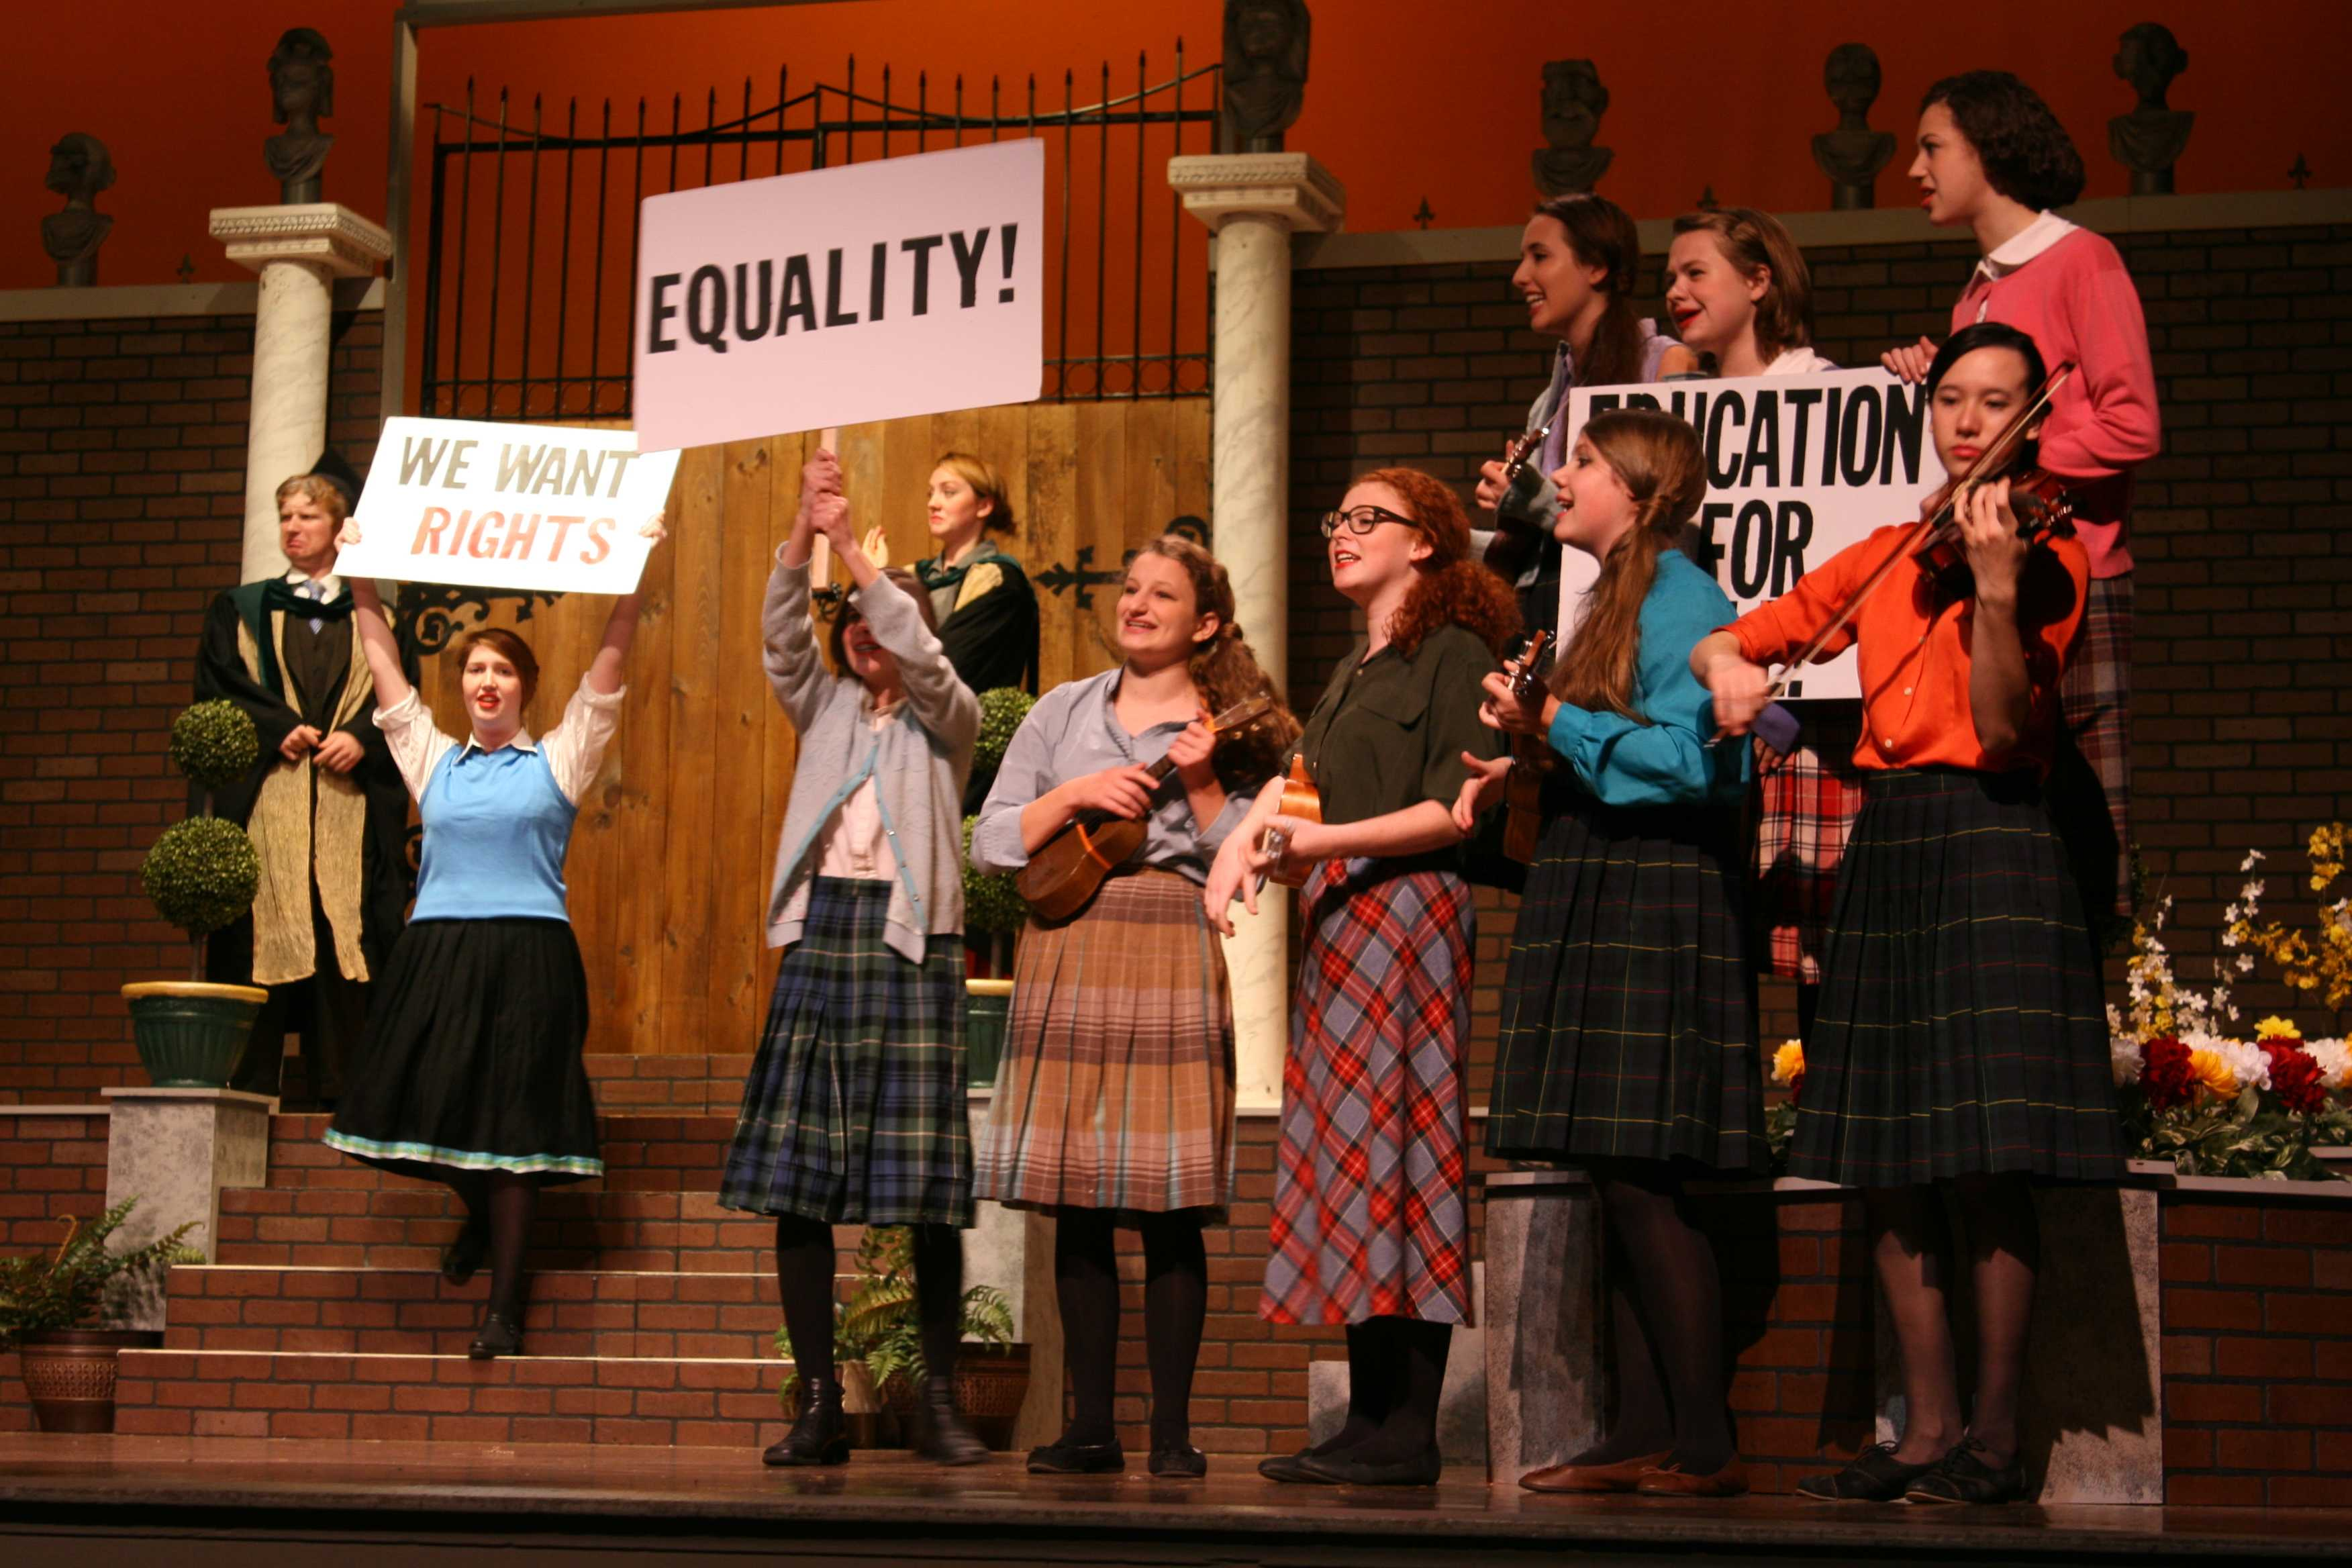 The Shakespeare play, Love's Labour Lost, utilizes the theme of the 1920s to highlight the women's right movement.